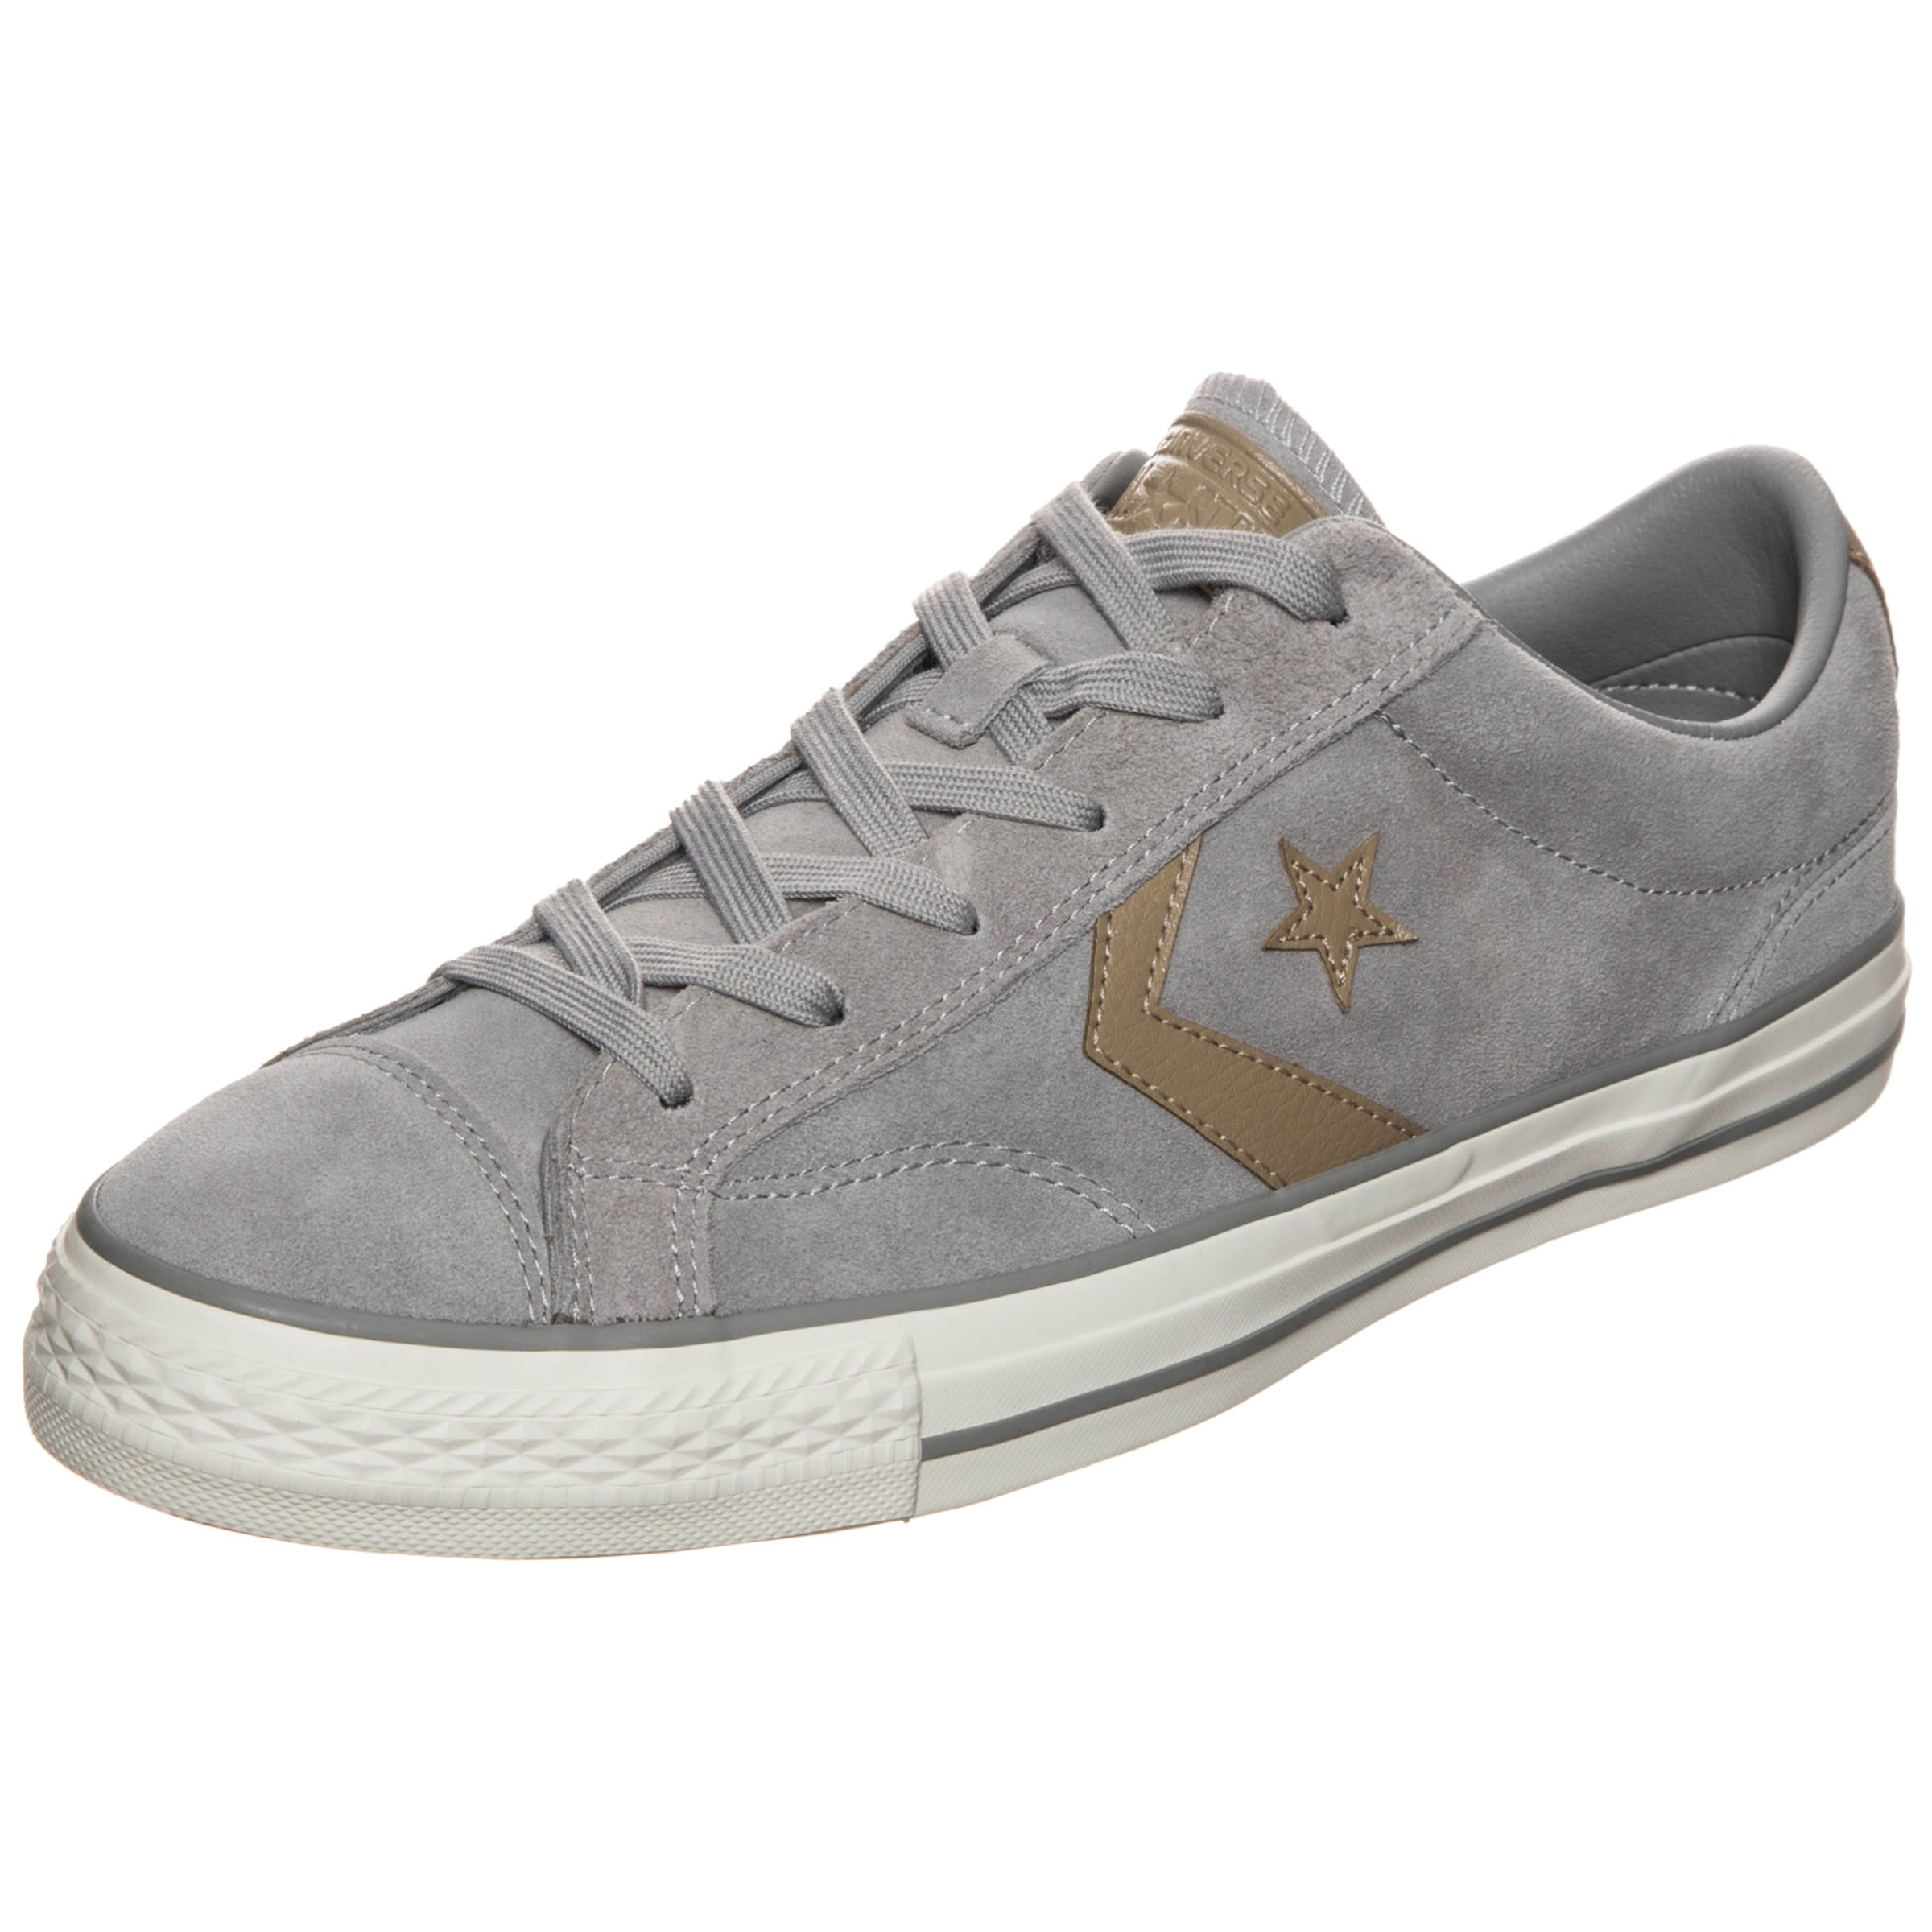 CONVERSE Cons Star Player OX Sneaker